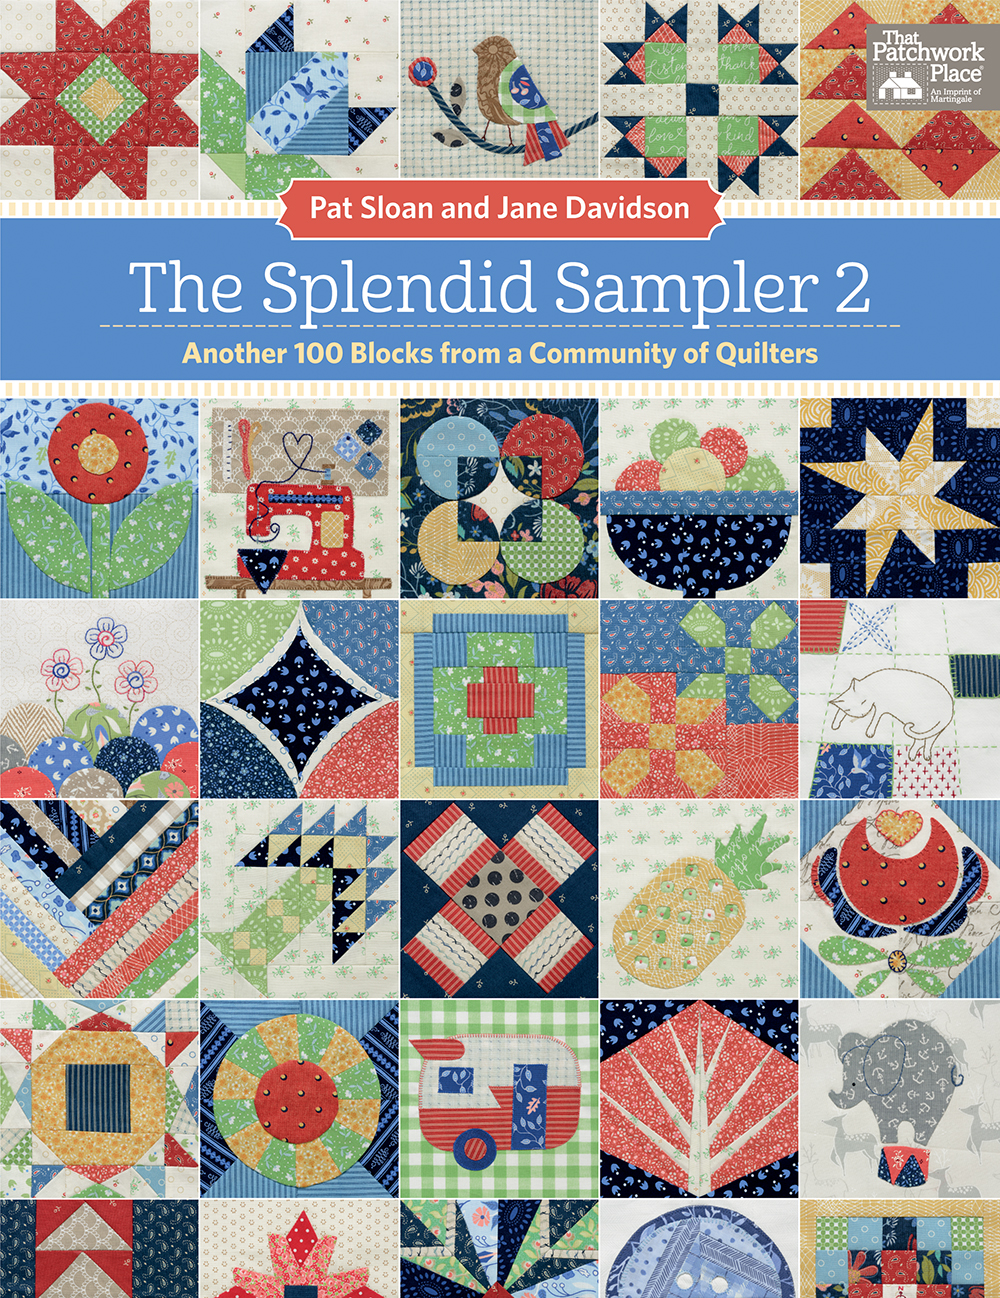 TheSplendidSampler2Book by Pat Sloan and Jane Davidson.jpg